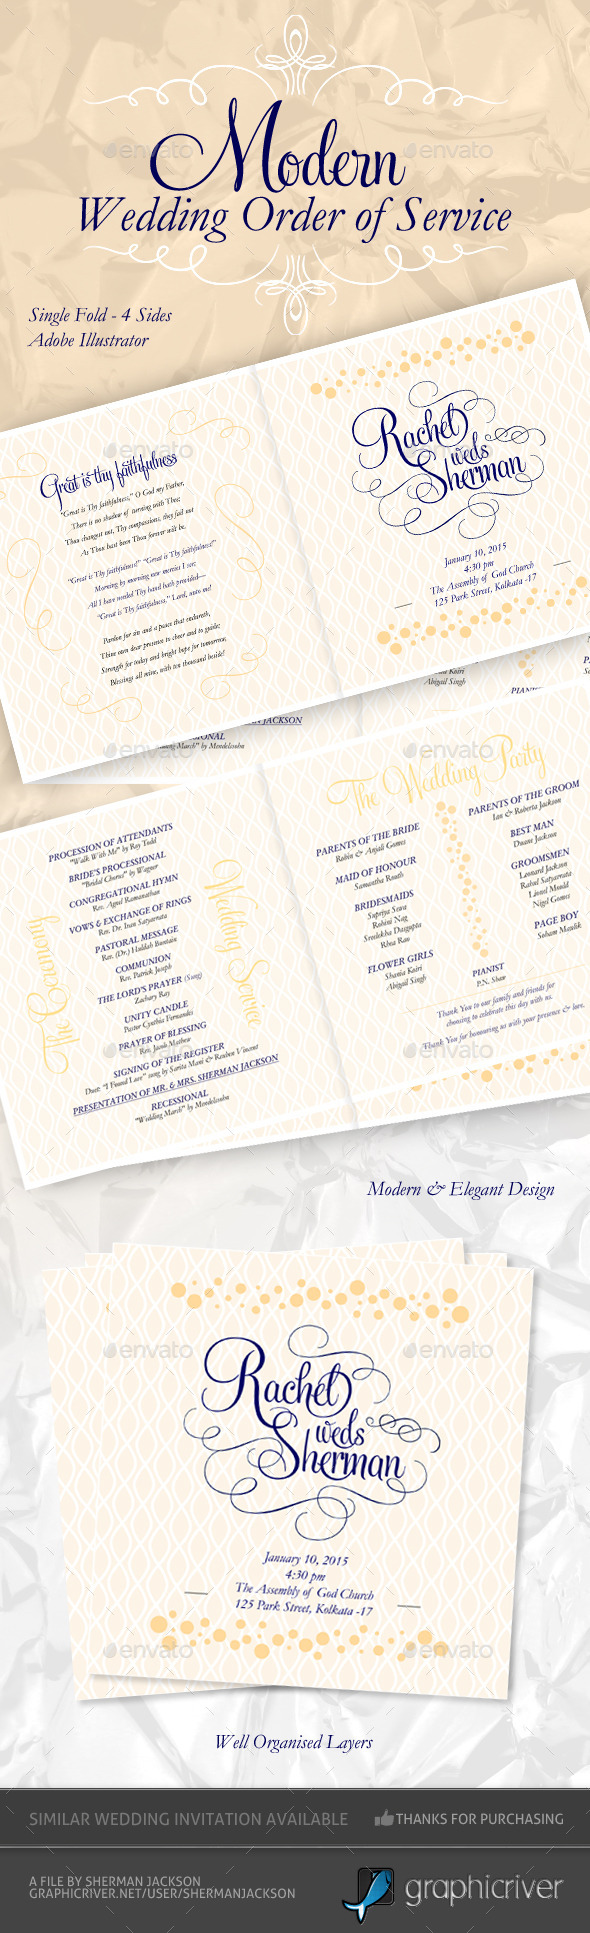 Modern & Elegant Wedding Order of Service - Weddings Cards & Invites